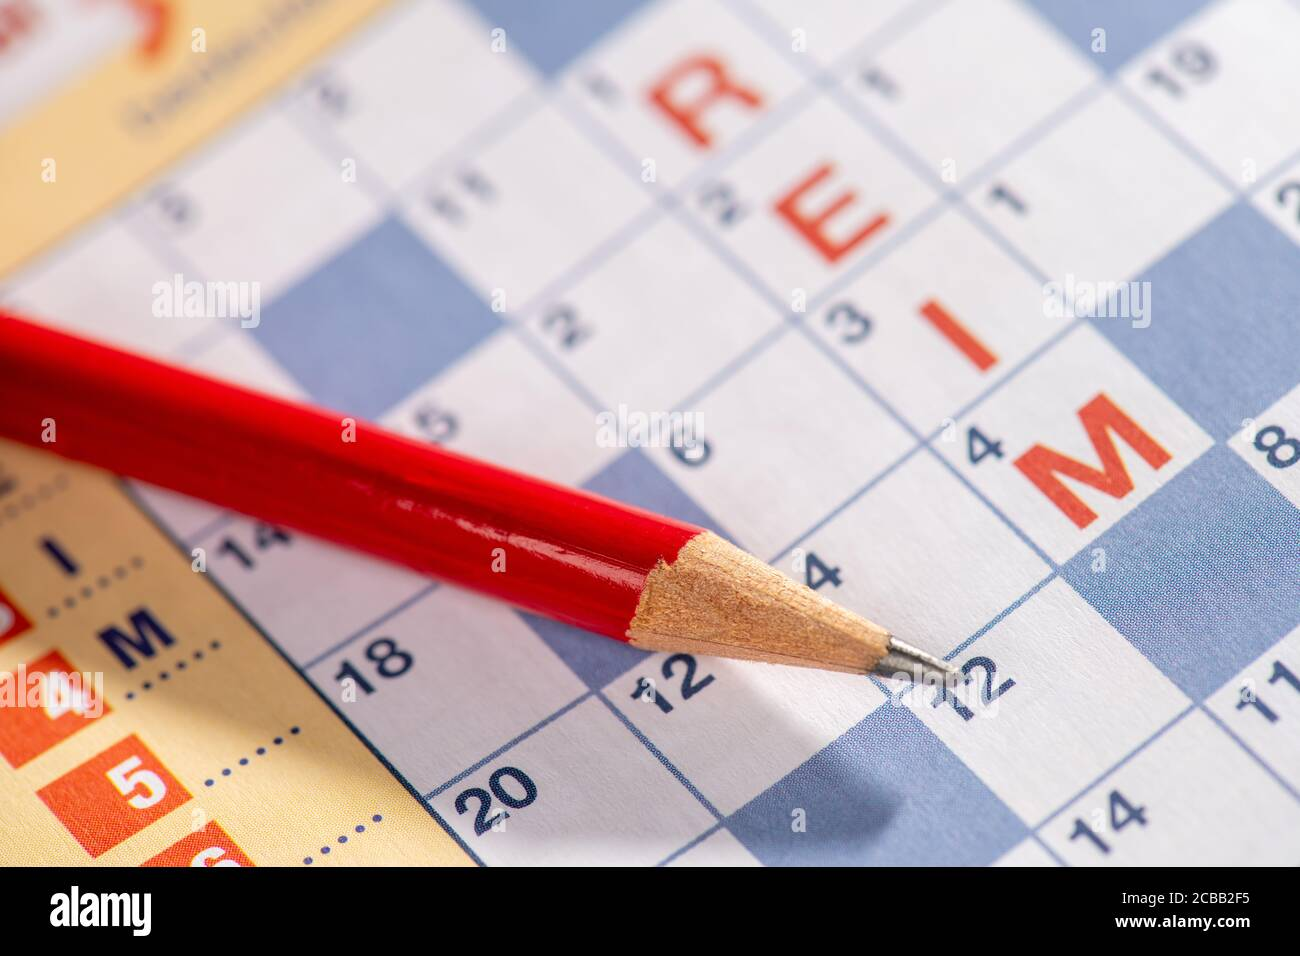 red pencil lies on crossword puzzle Stock Photo